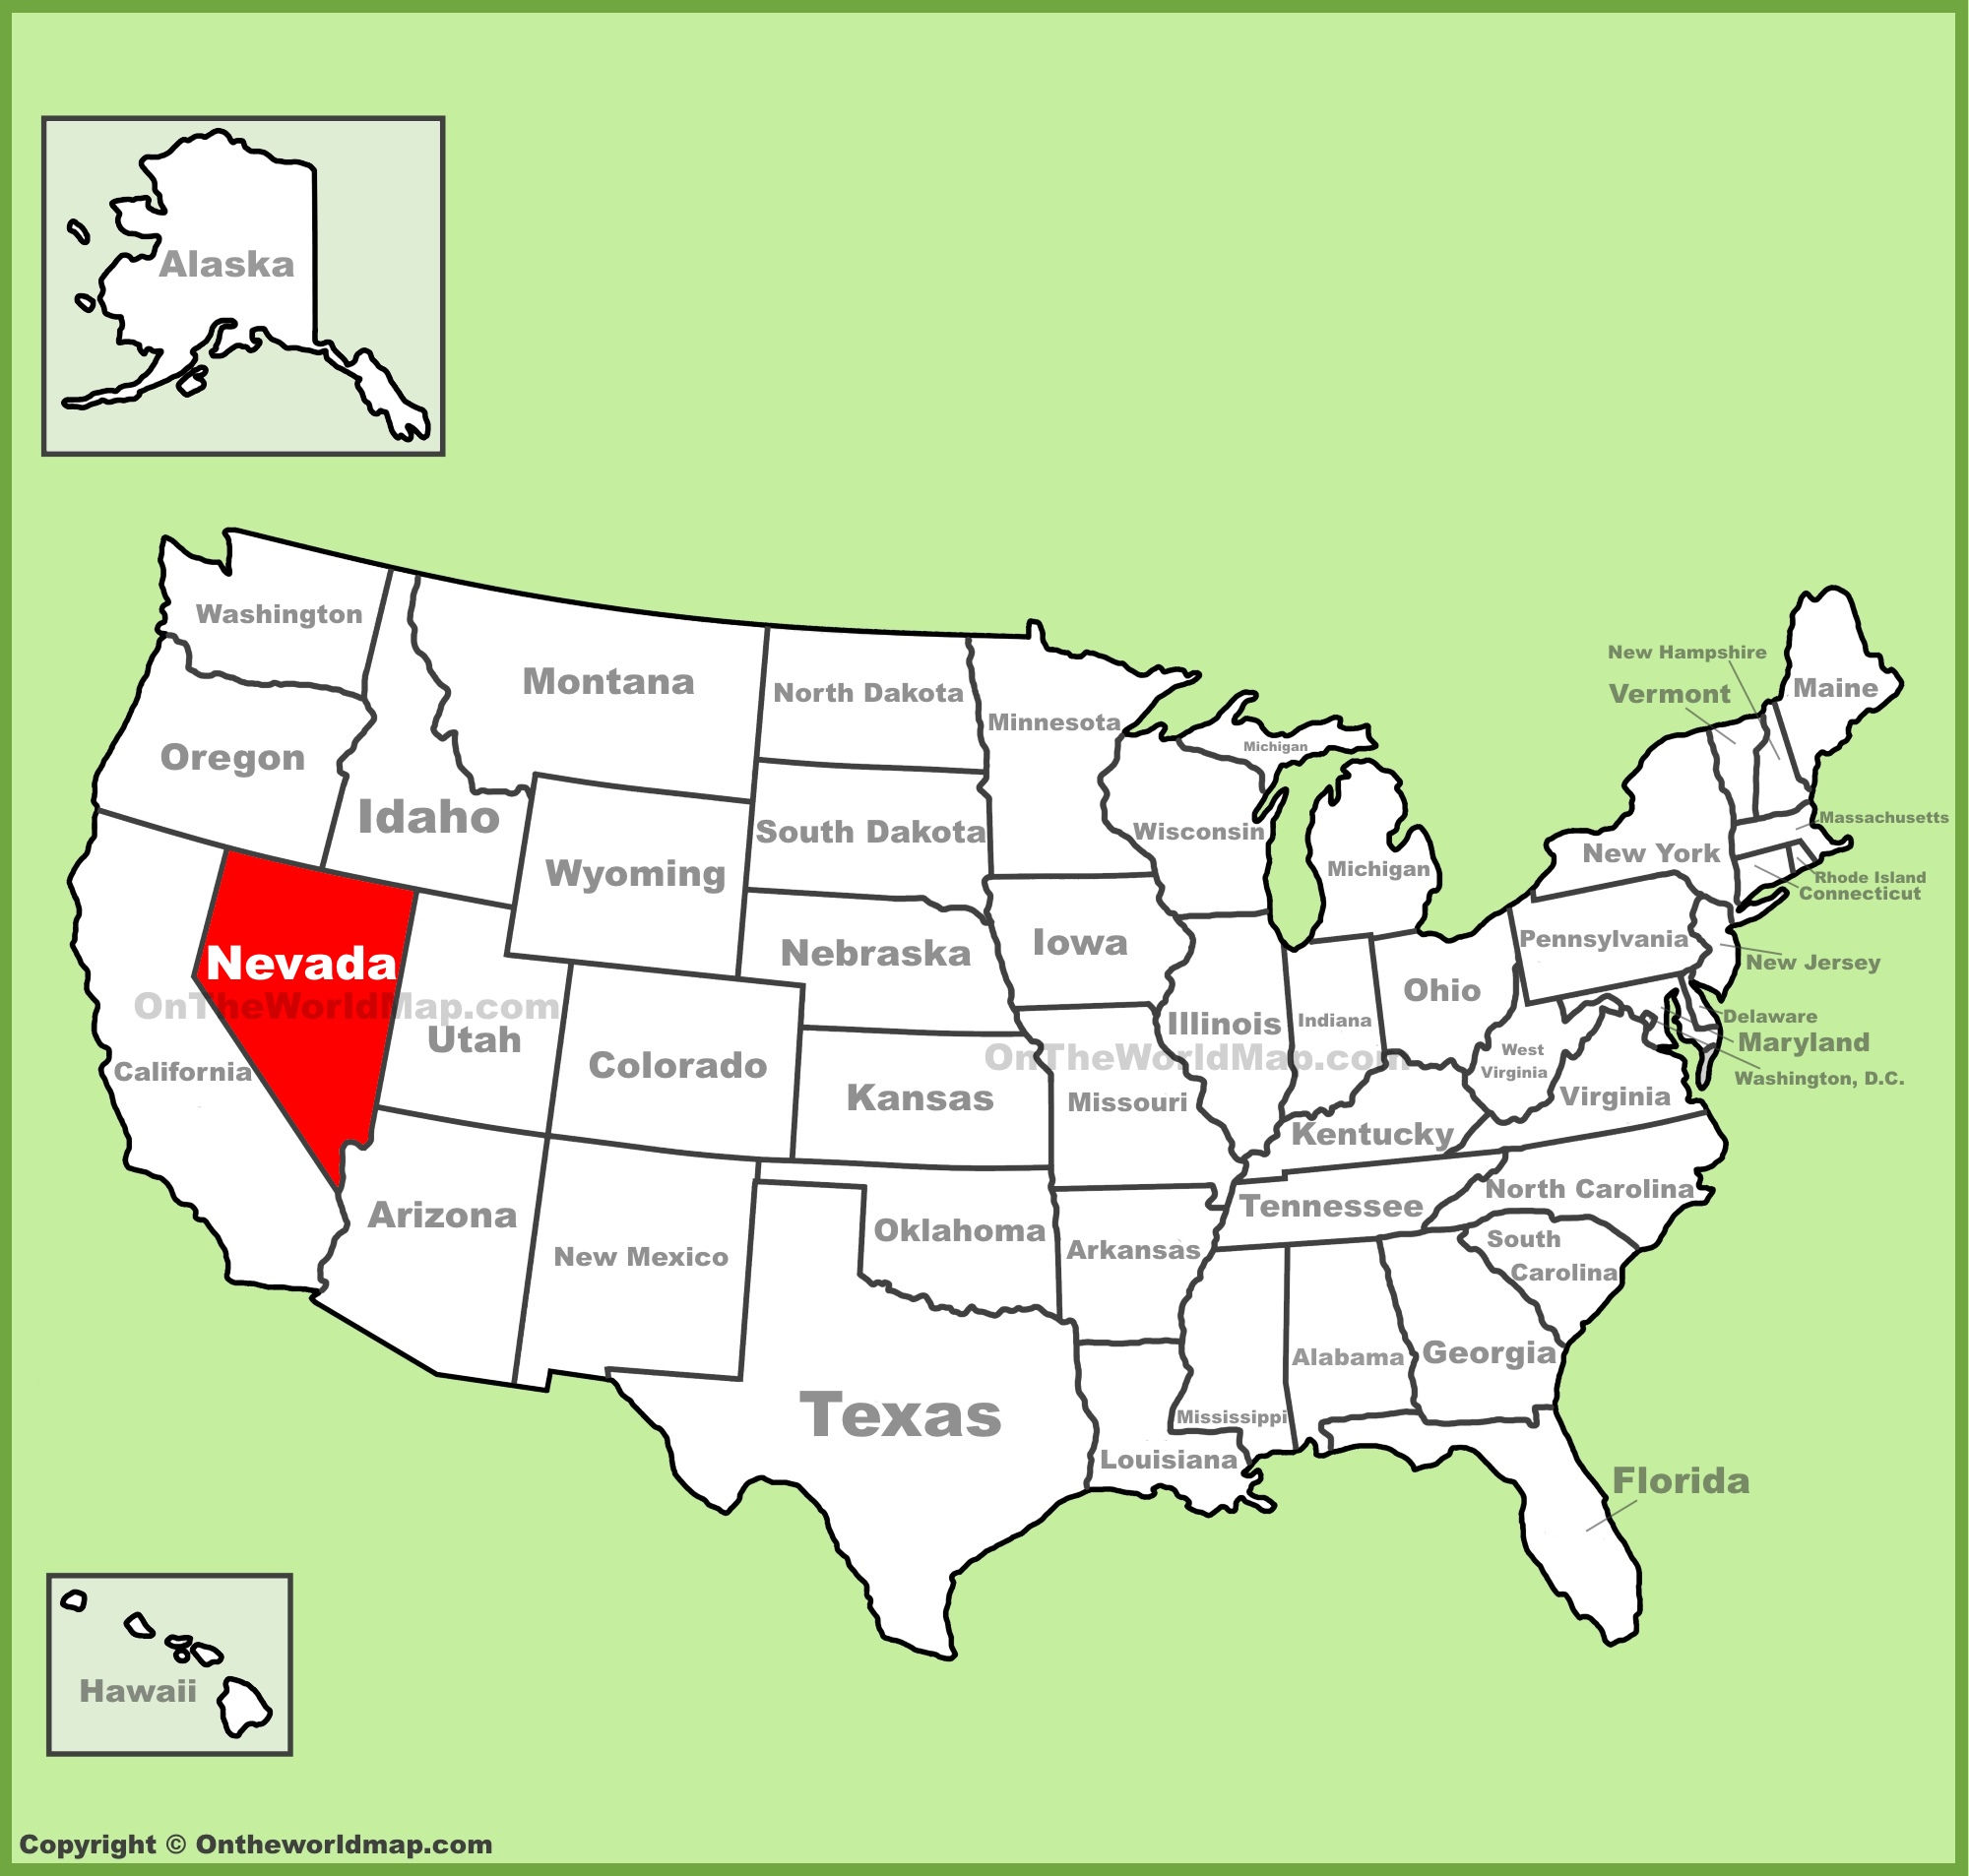 Nevada Location On The US Map - Nevada in us map